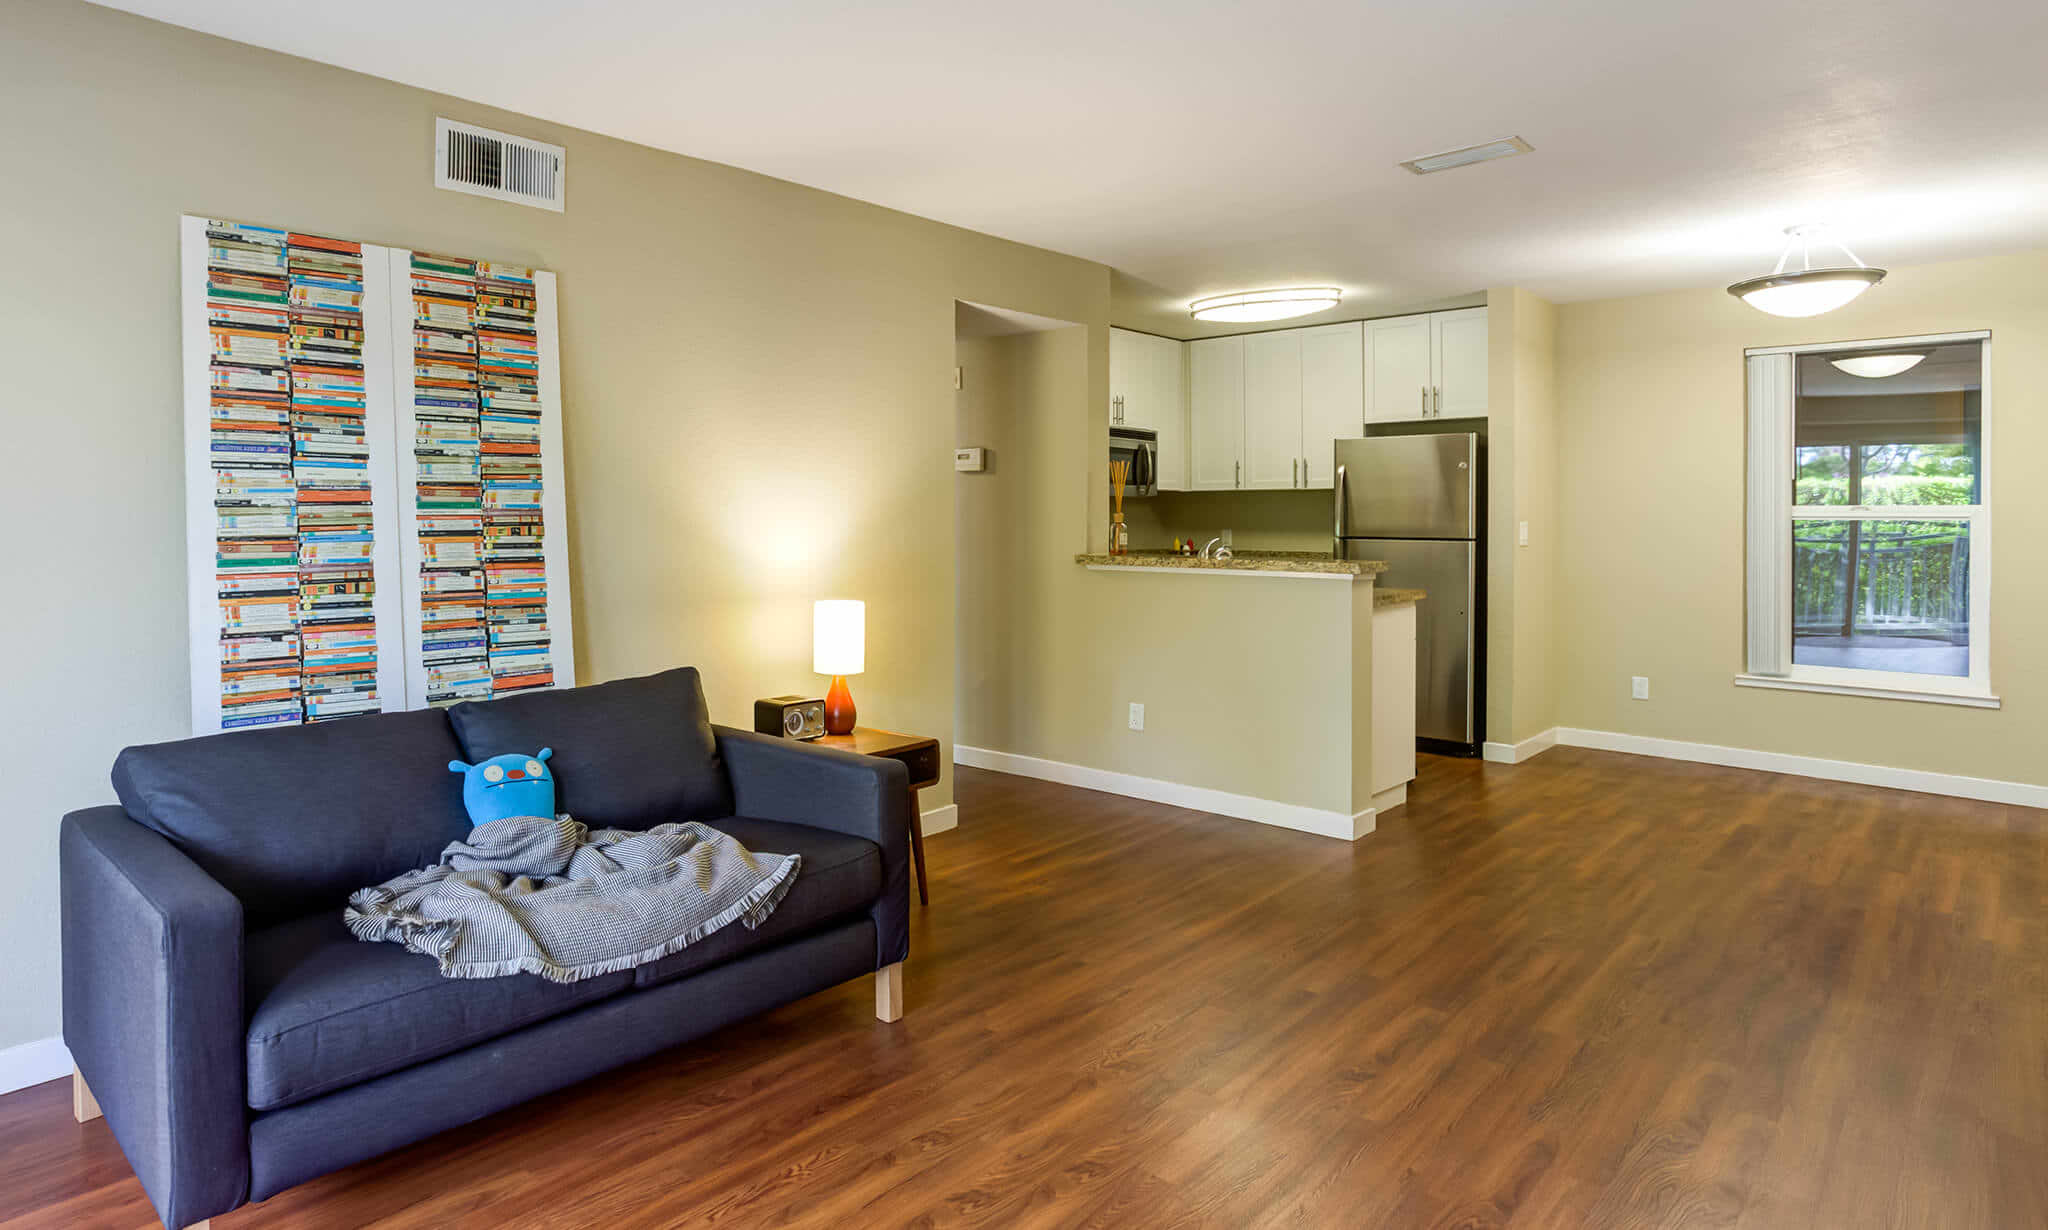 Kensington Place Apartments apartments in Sunnyvale CA to rent photo 6